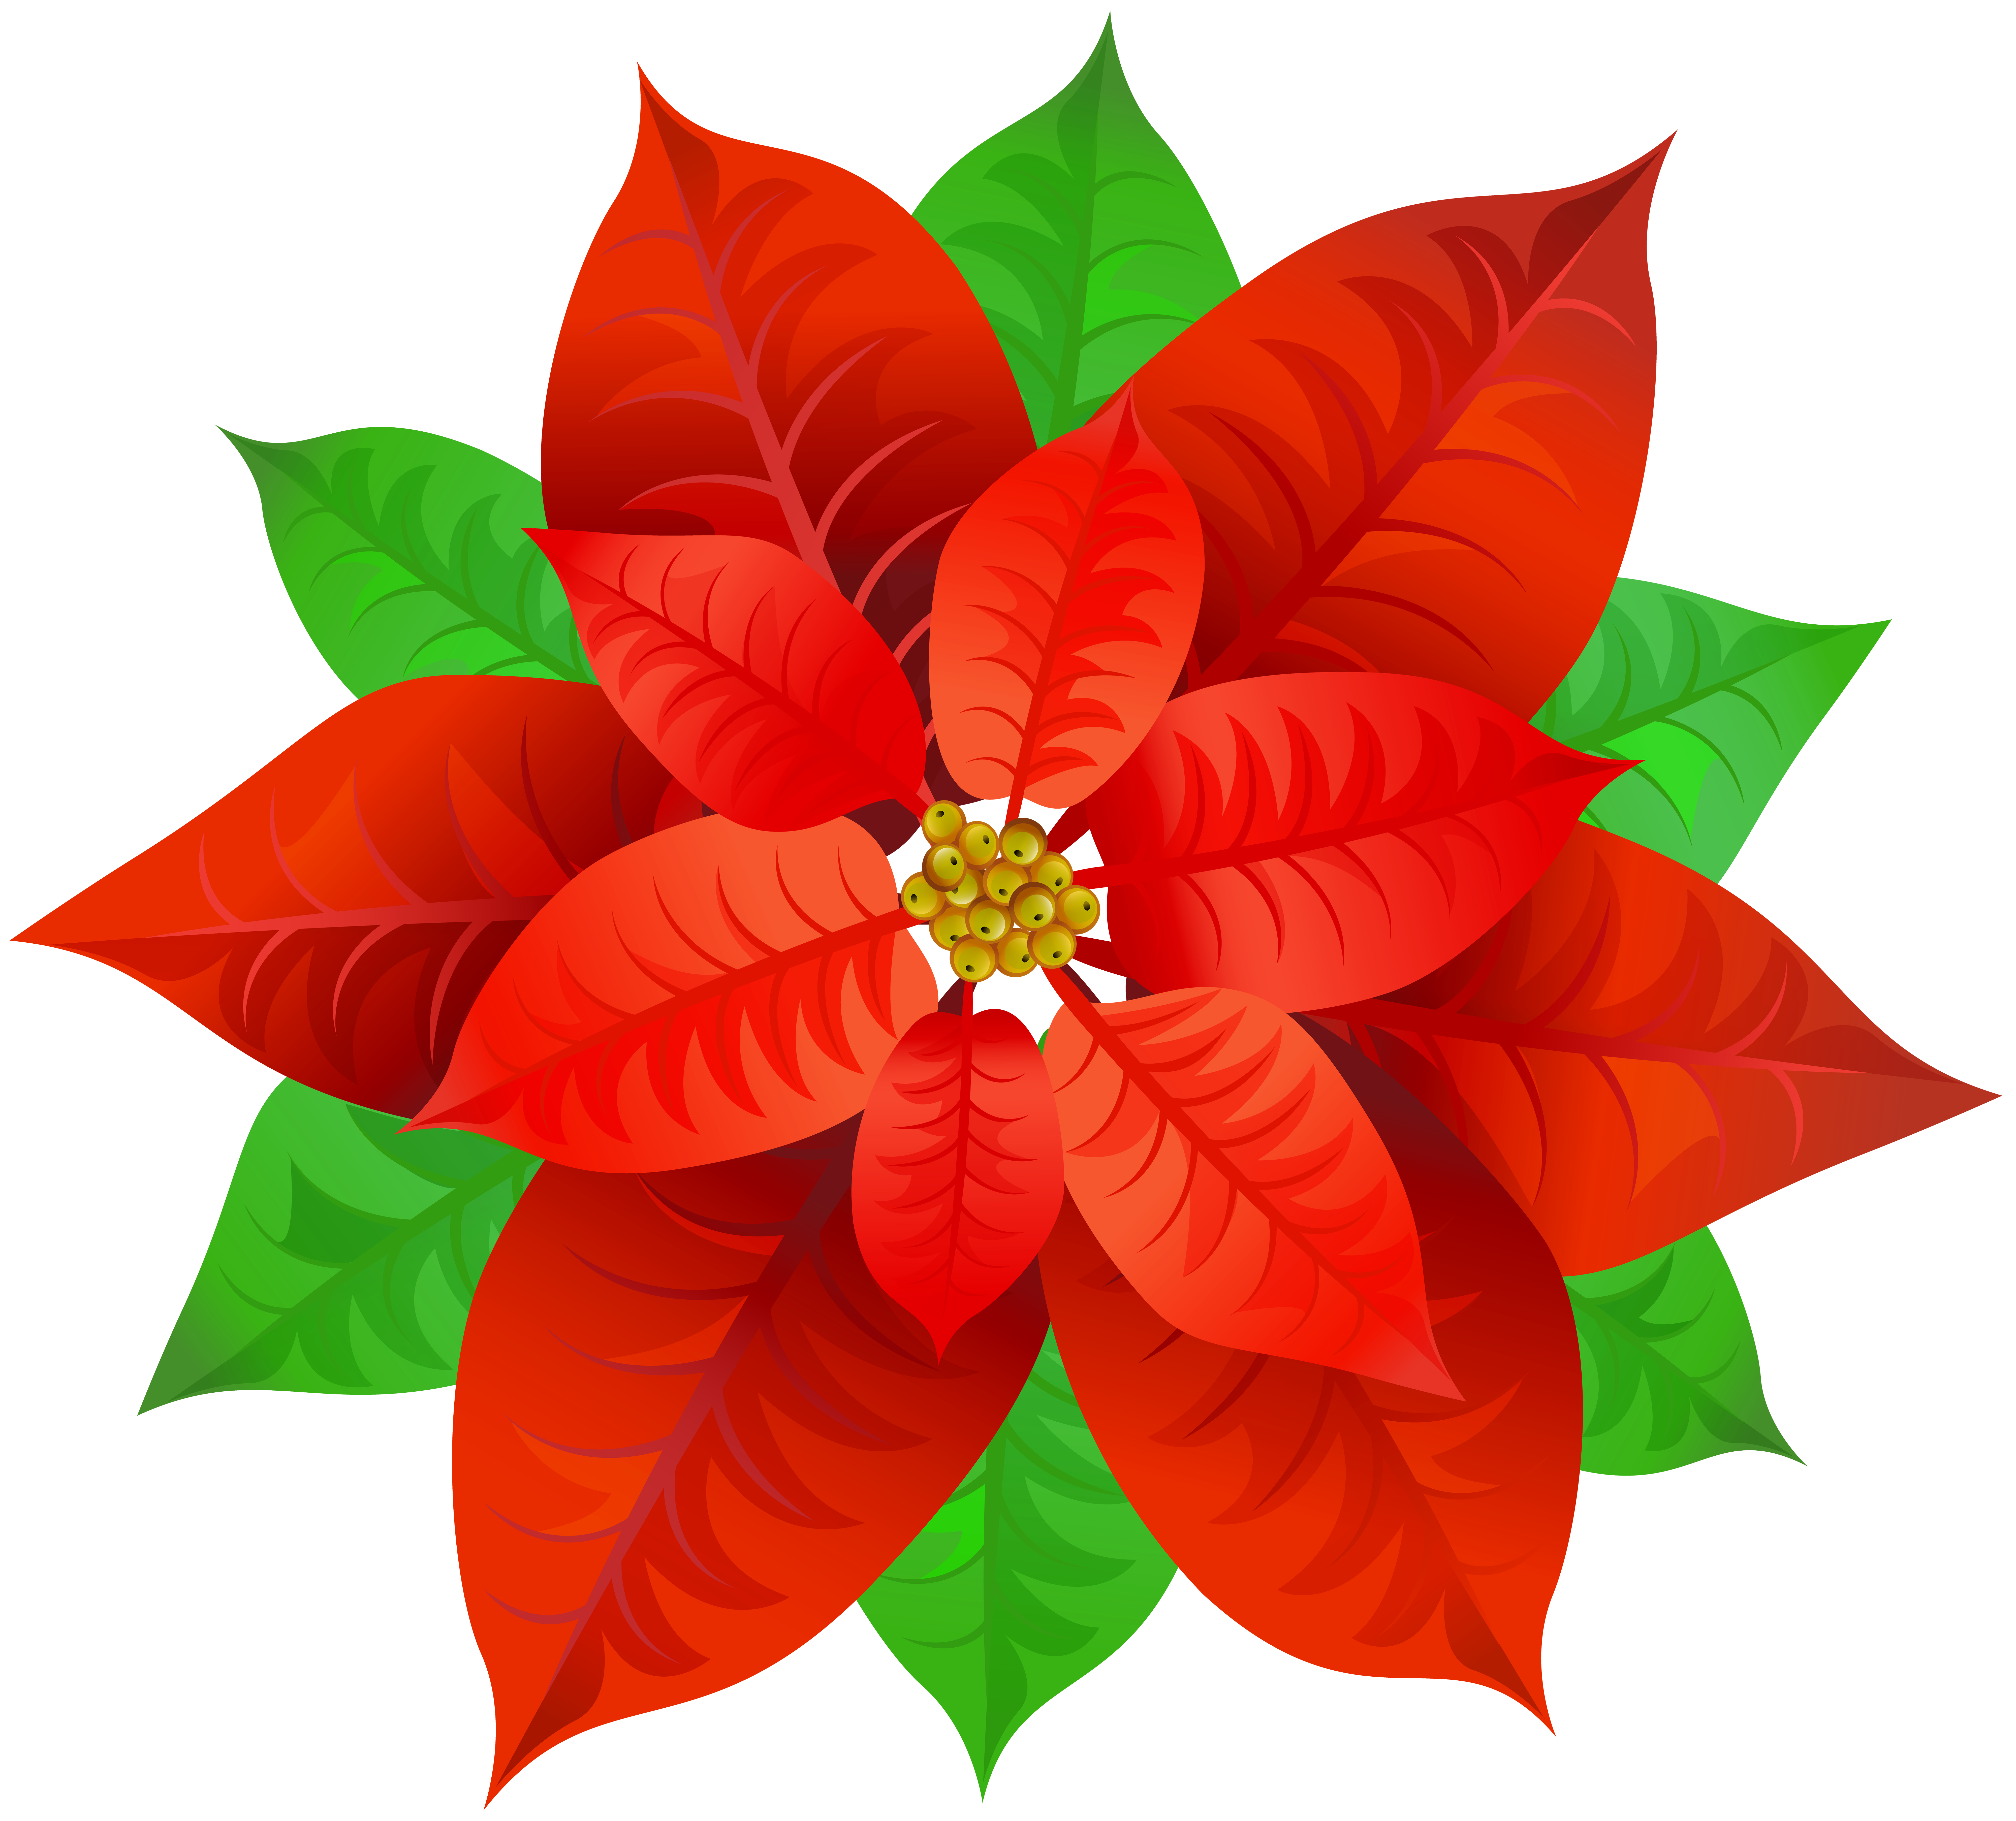 Poinsettias clipart with transparent background png royalty free stock Poinsettia Transparent PNG Image | Gallery Yopriceville ... png royalty free stock